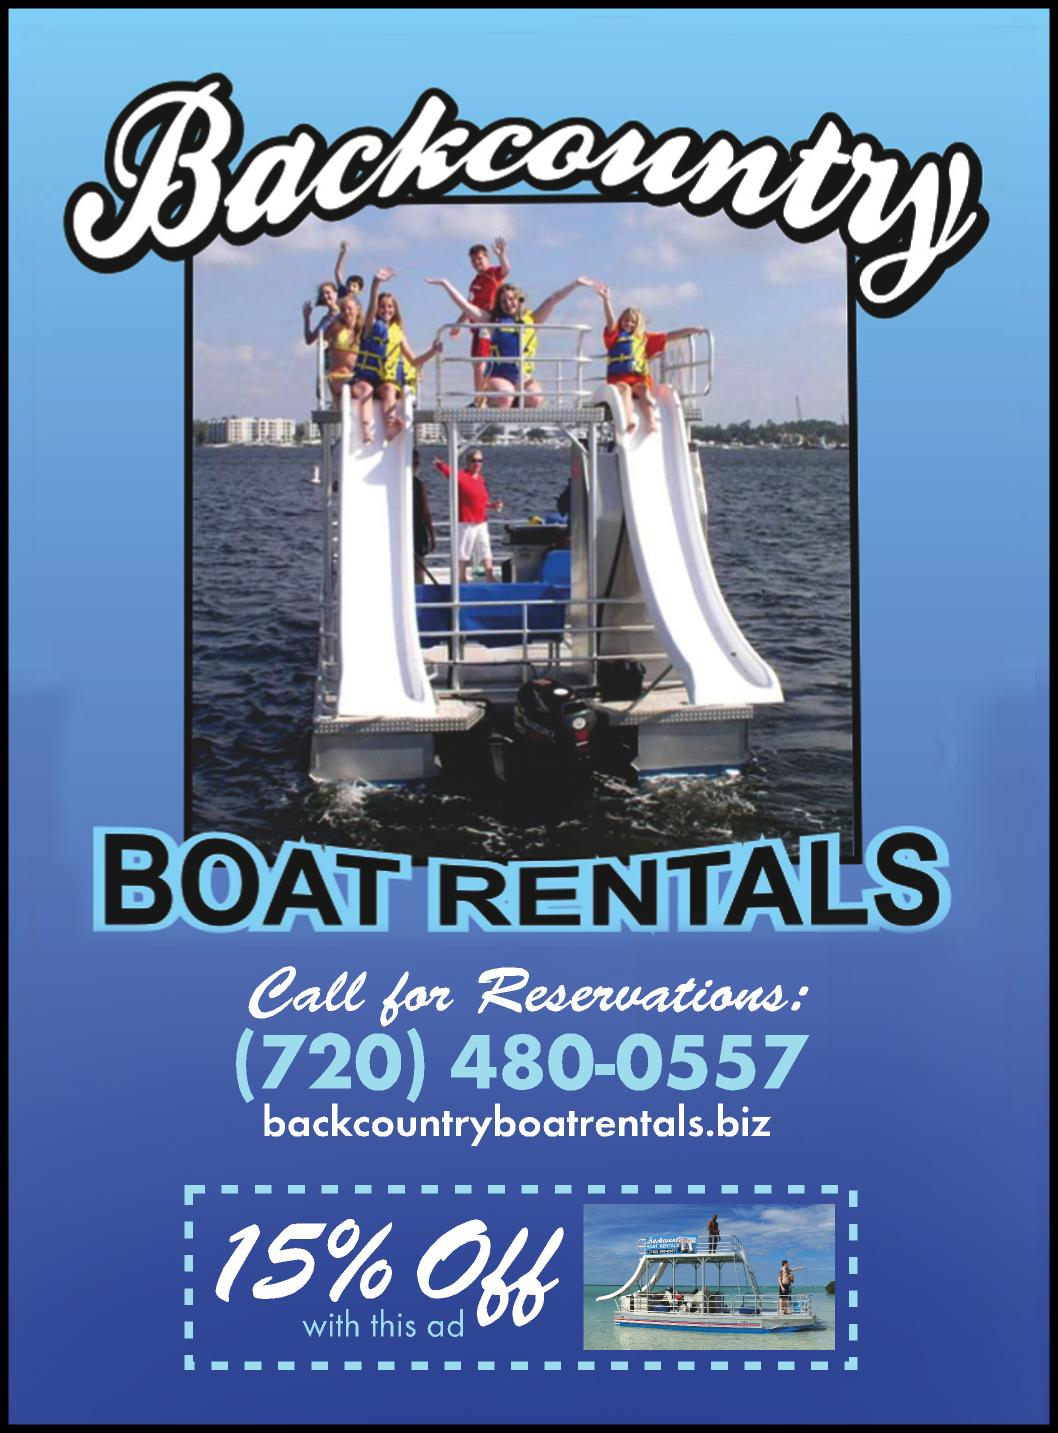 Backcountry Boat Rentals, Key West/Florida Keys